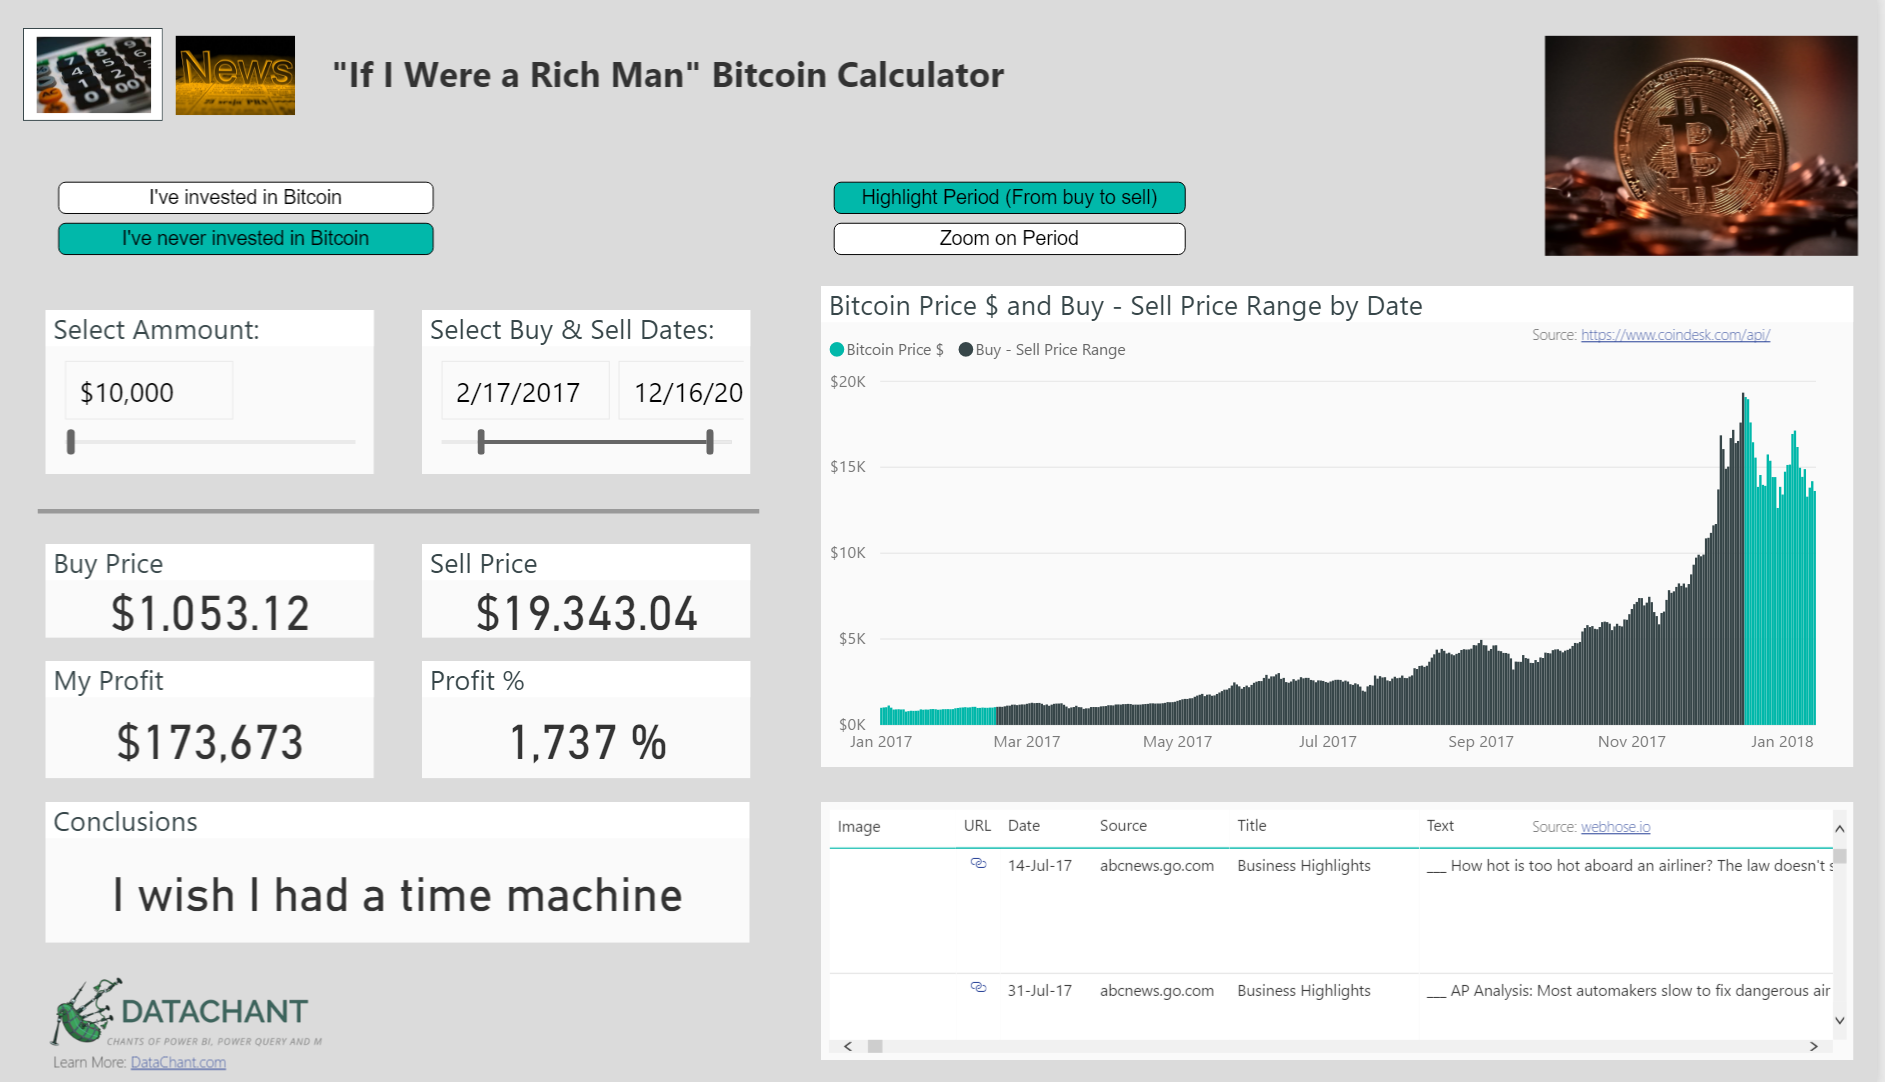 If I Were a Rich Man - A Bitcoin What-If Calculator